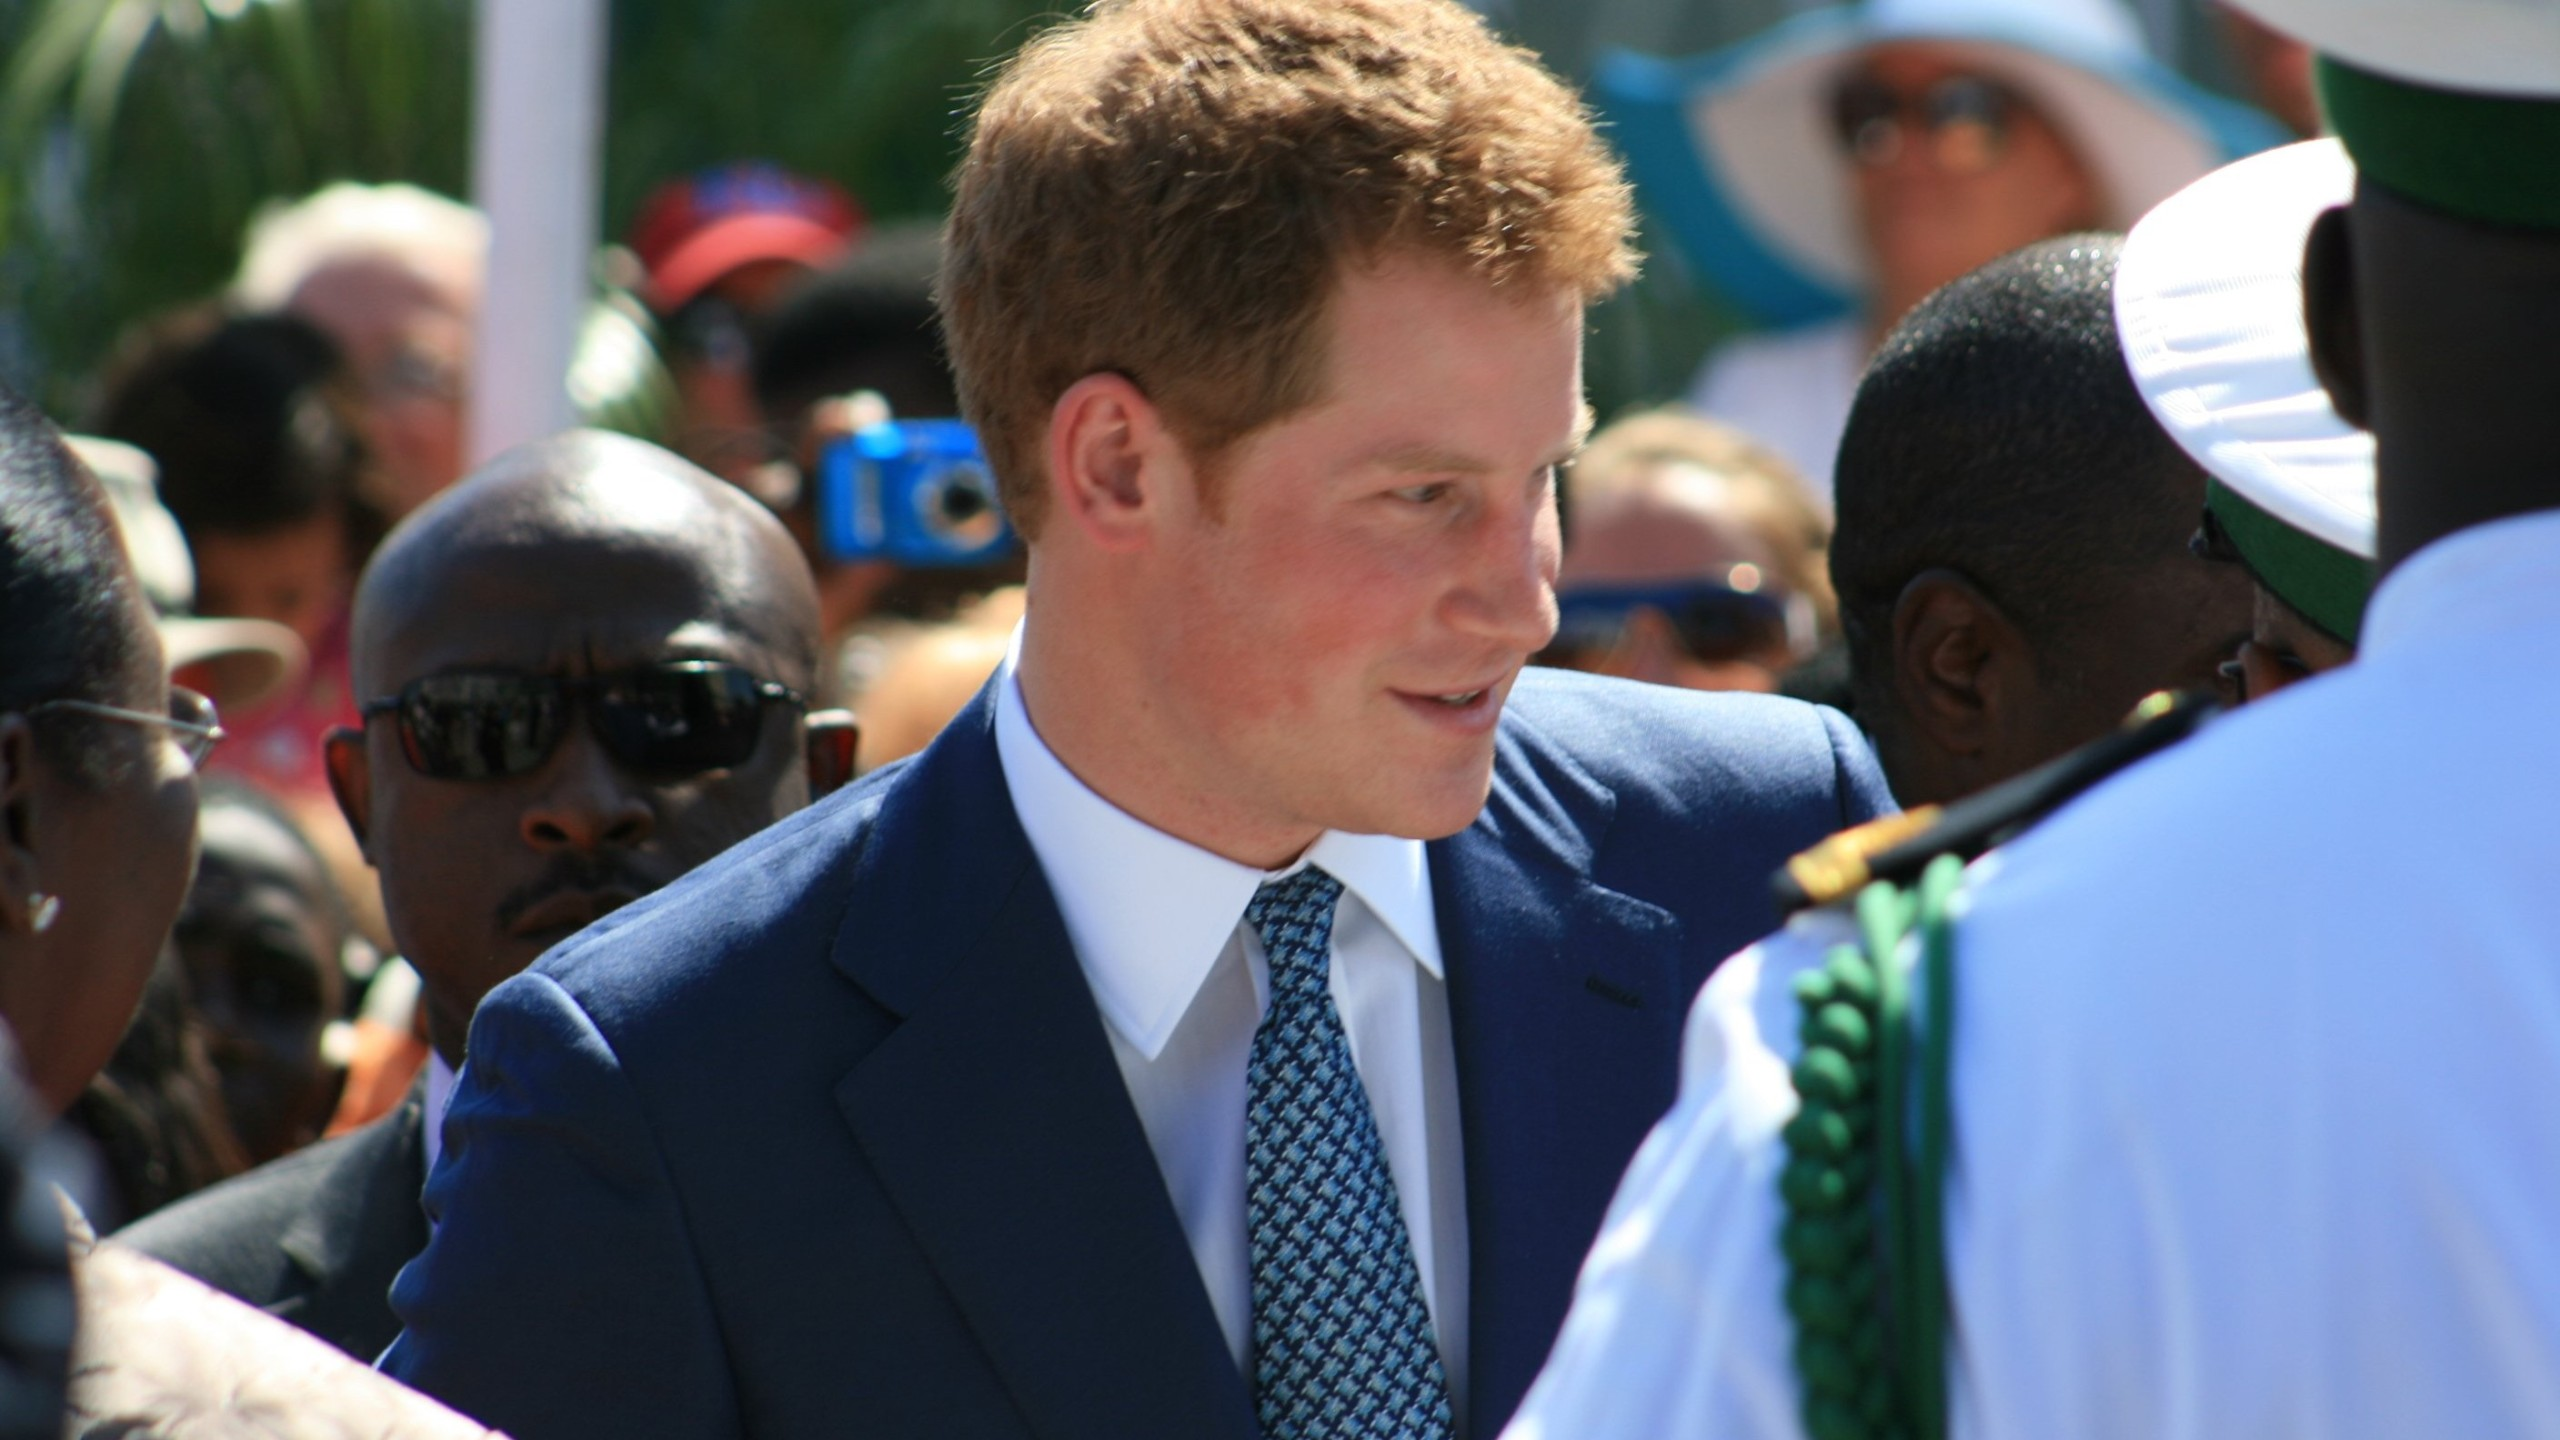 Prince Harry is scheduled to visit Colorado on Friday and Saturday. (Credit: CNN)